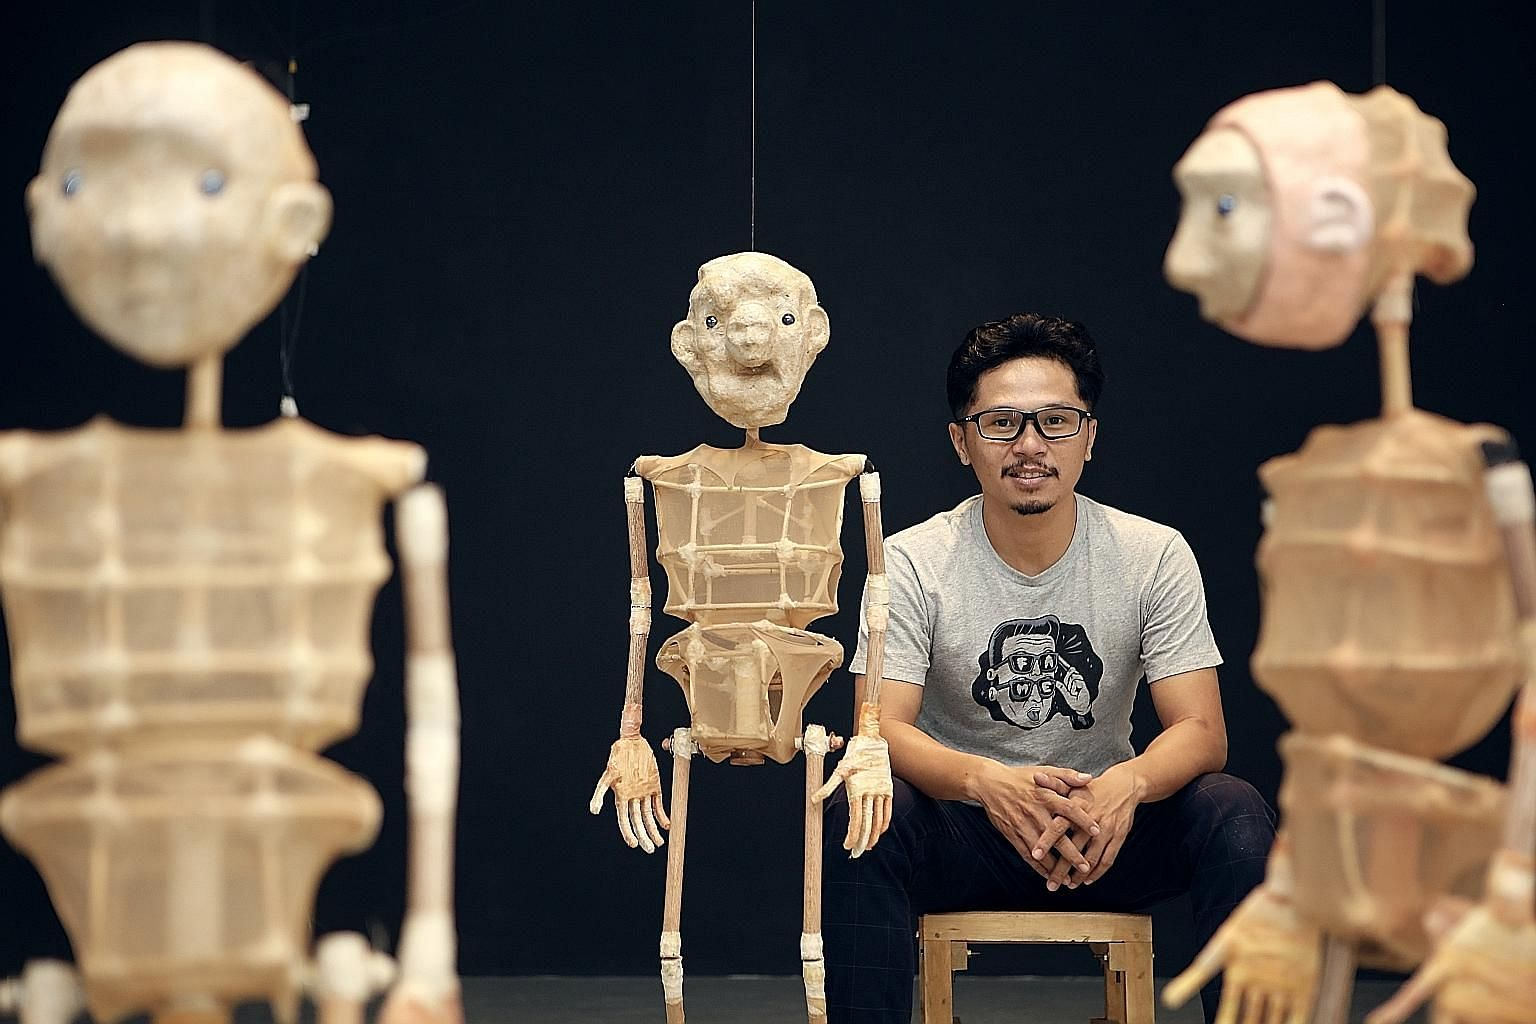 Artist Iwan Effendi says the most important feature of puppets is the face.